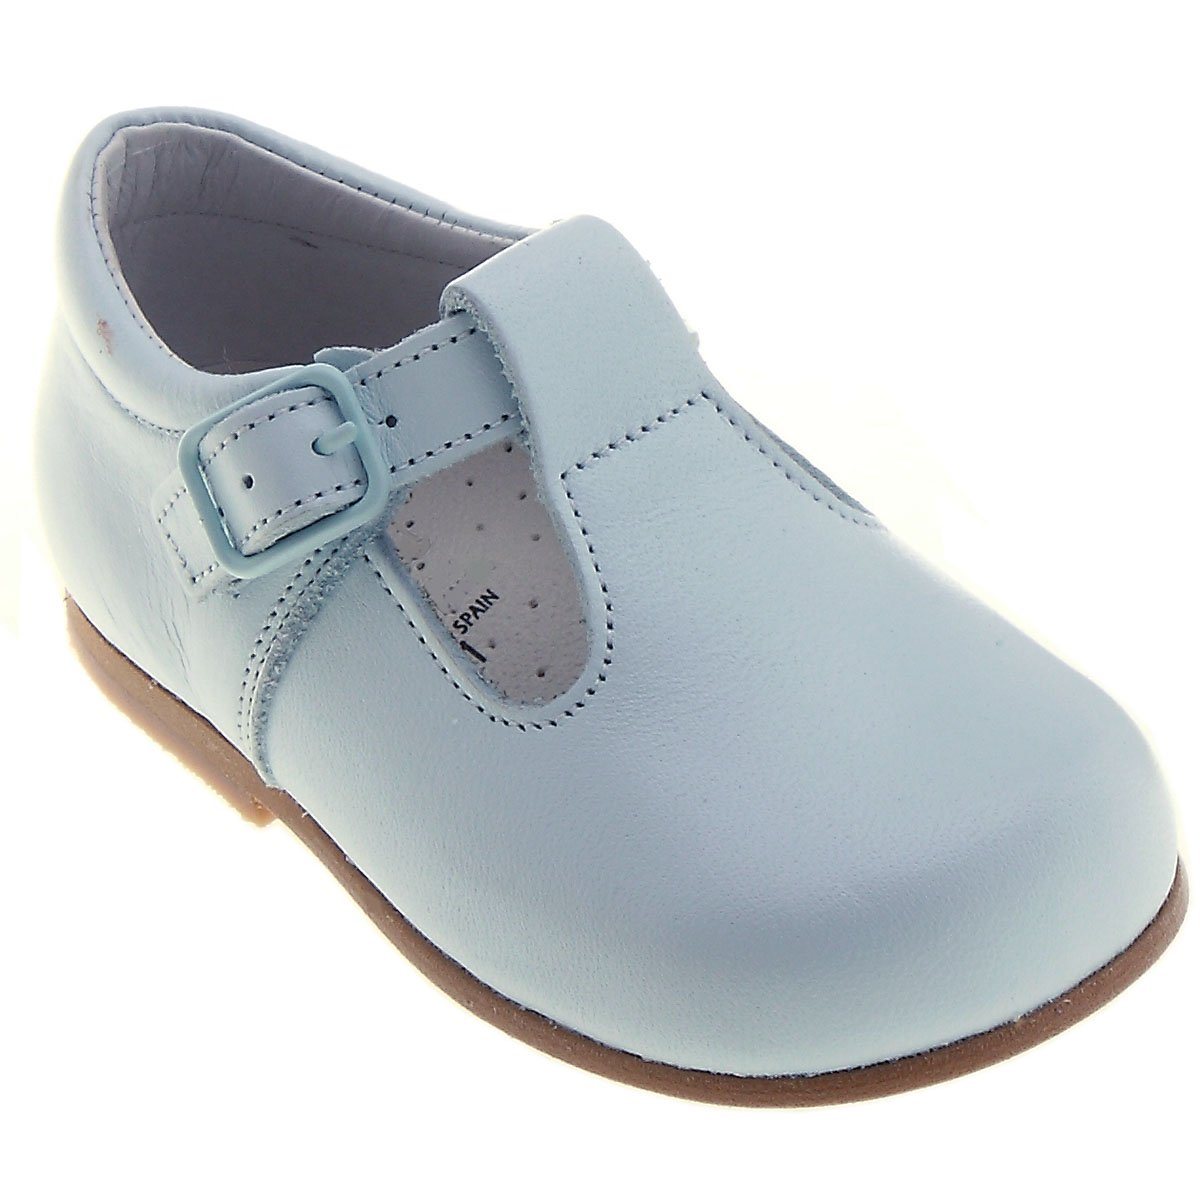 Spanish Baby Blue Leather Shoes For First Walker